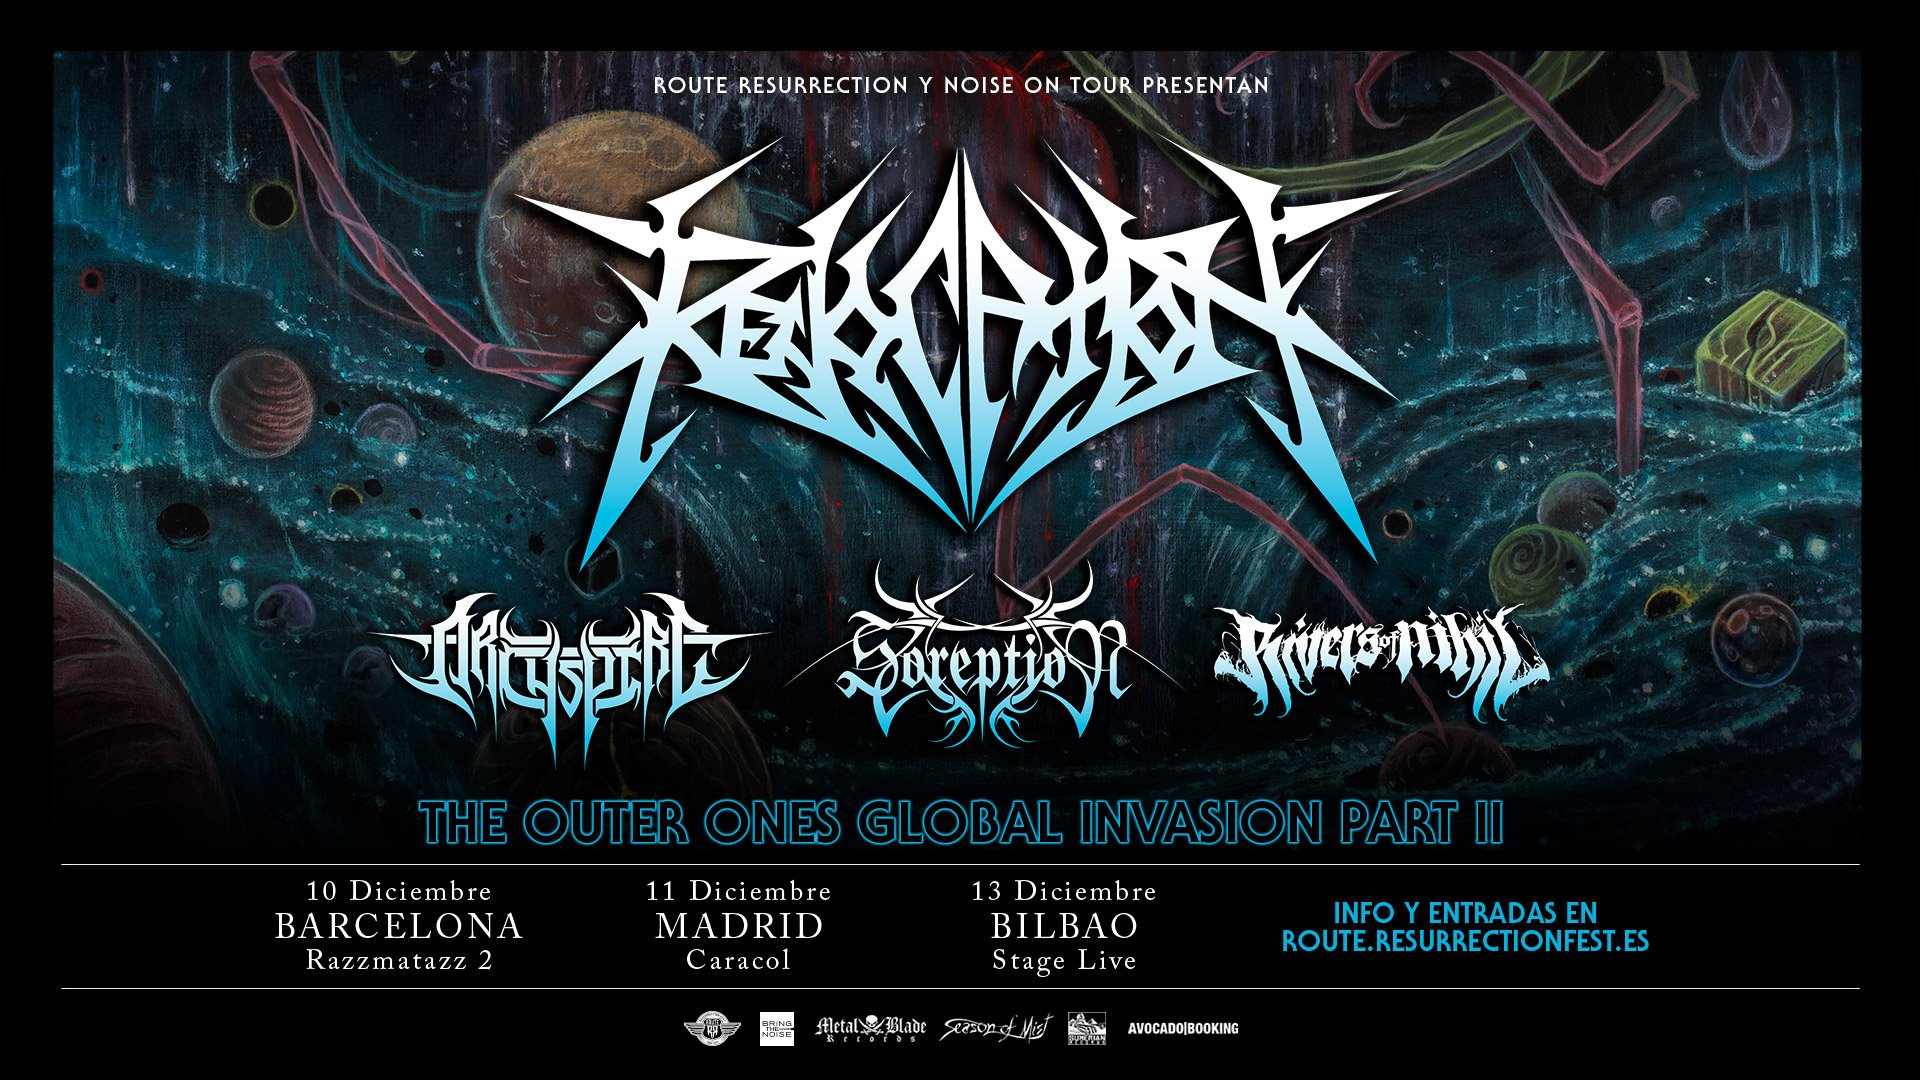 Route-Resurrection-2018-Revocation-Events